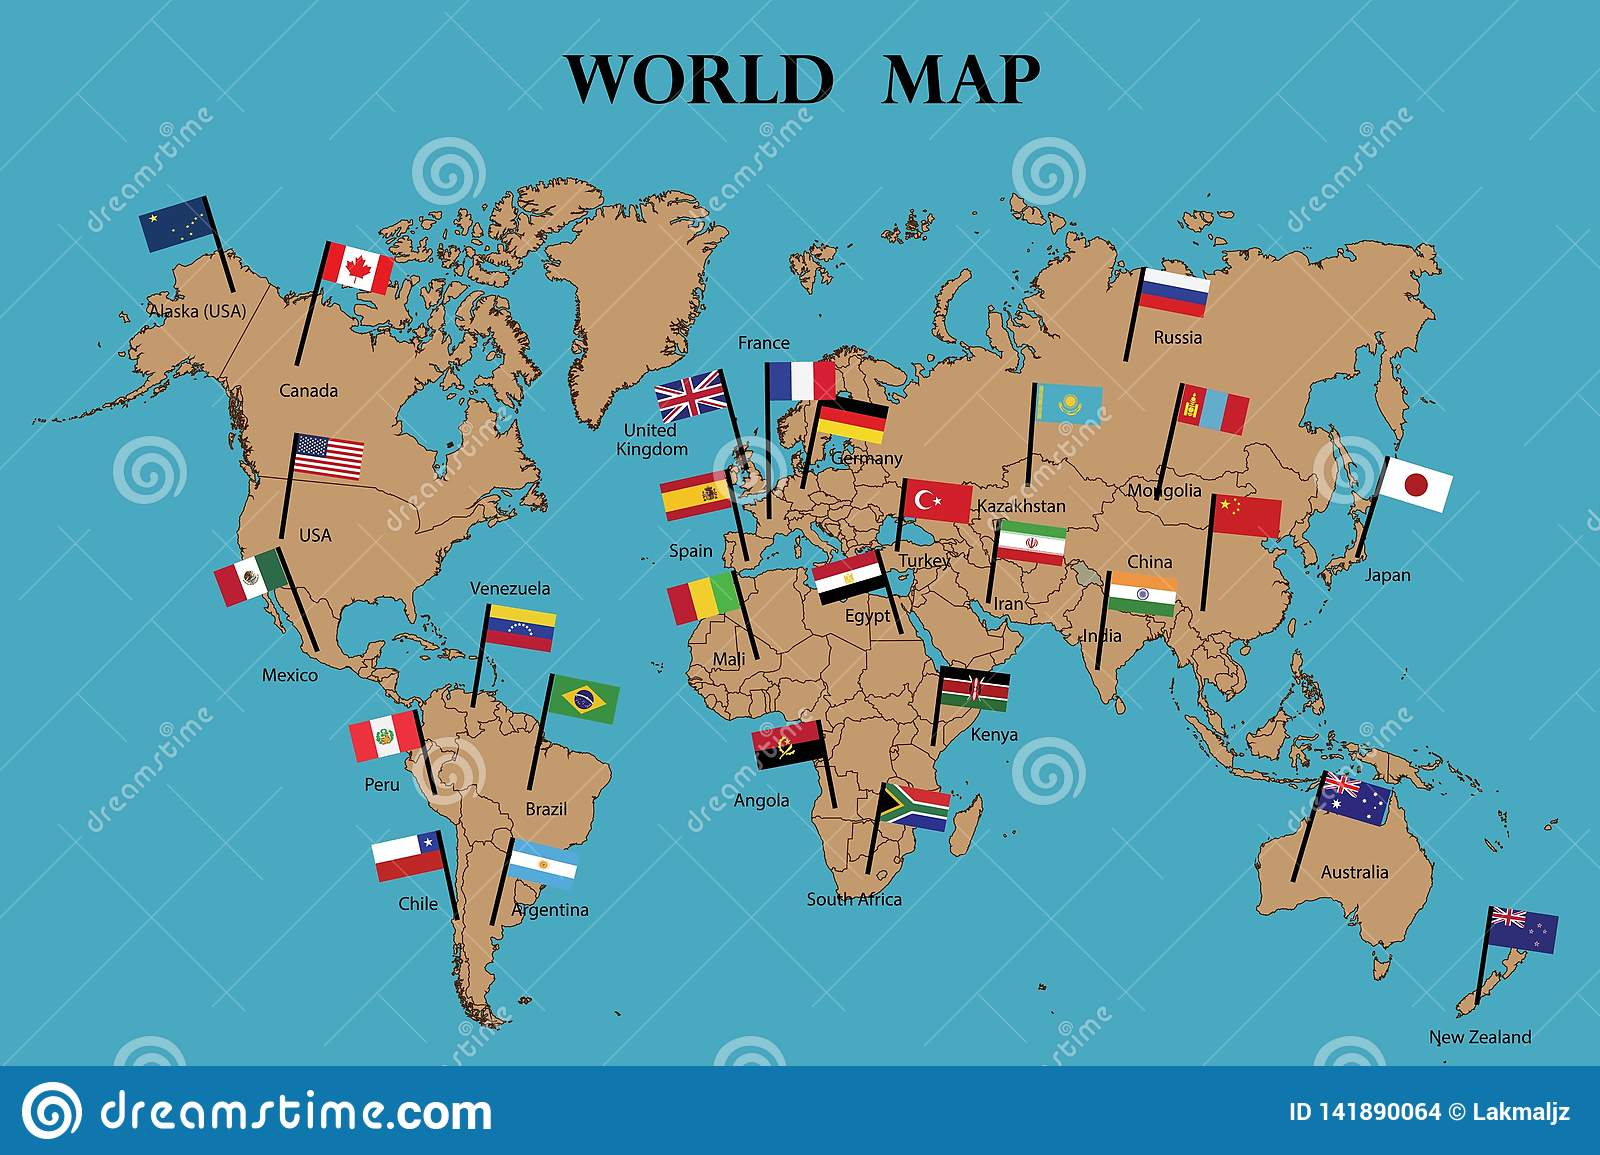 World Map and world flag stock vector. Illustration of icon